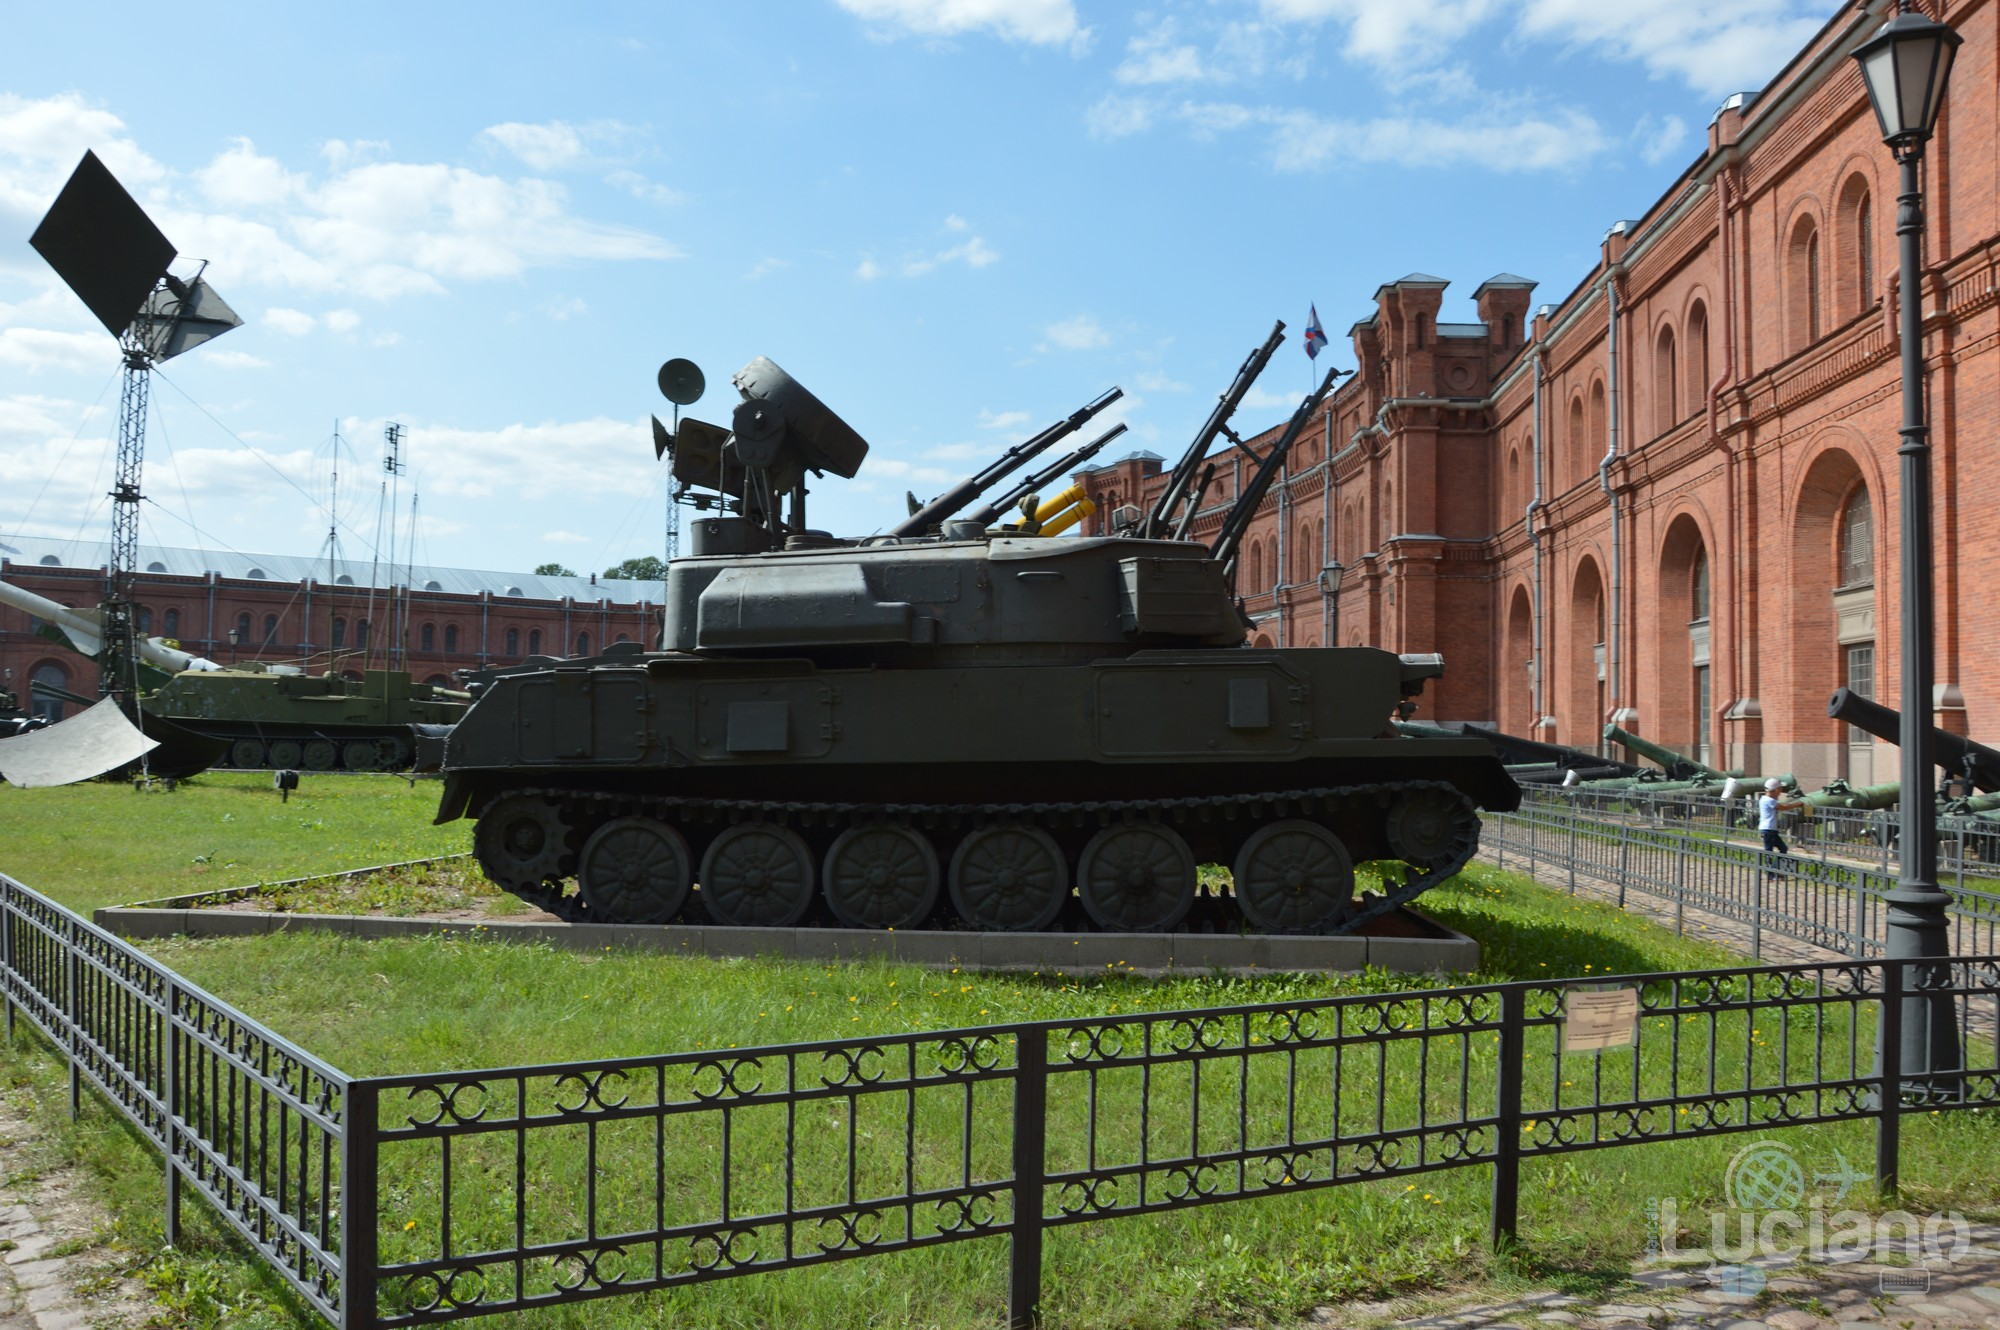 Military-Historical-Museum-of-Artillery-Engineer-and-Signal-Corps-St-Petersburg-Russia-Luciano-Blancato- (45)